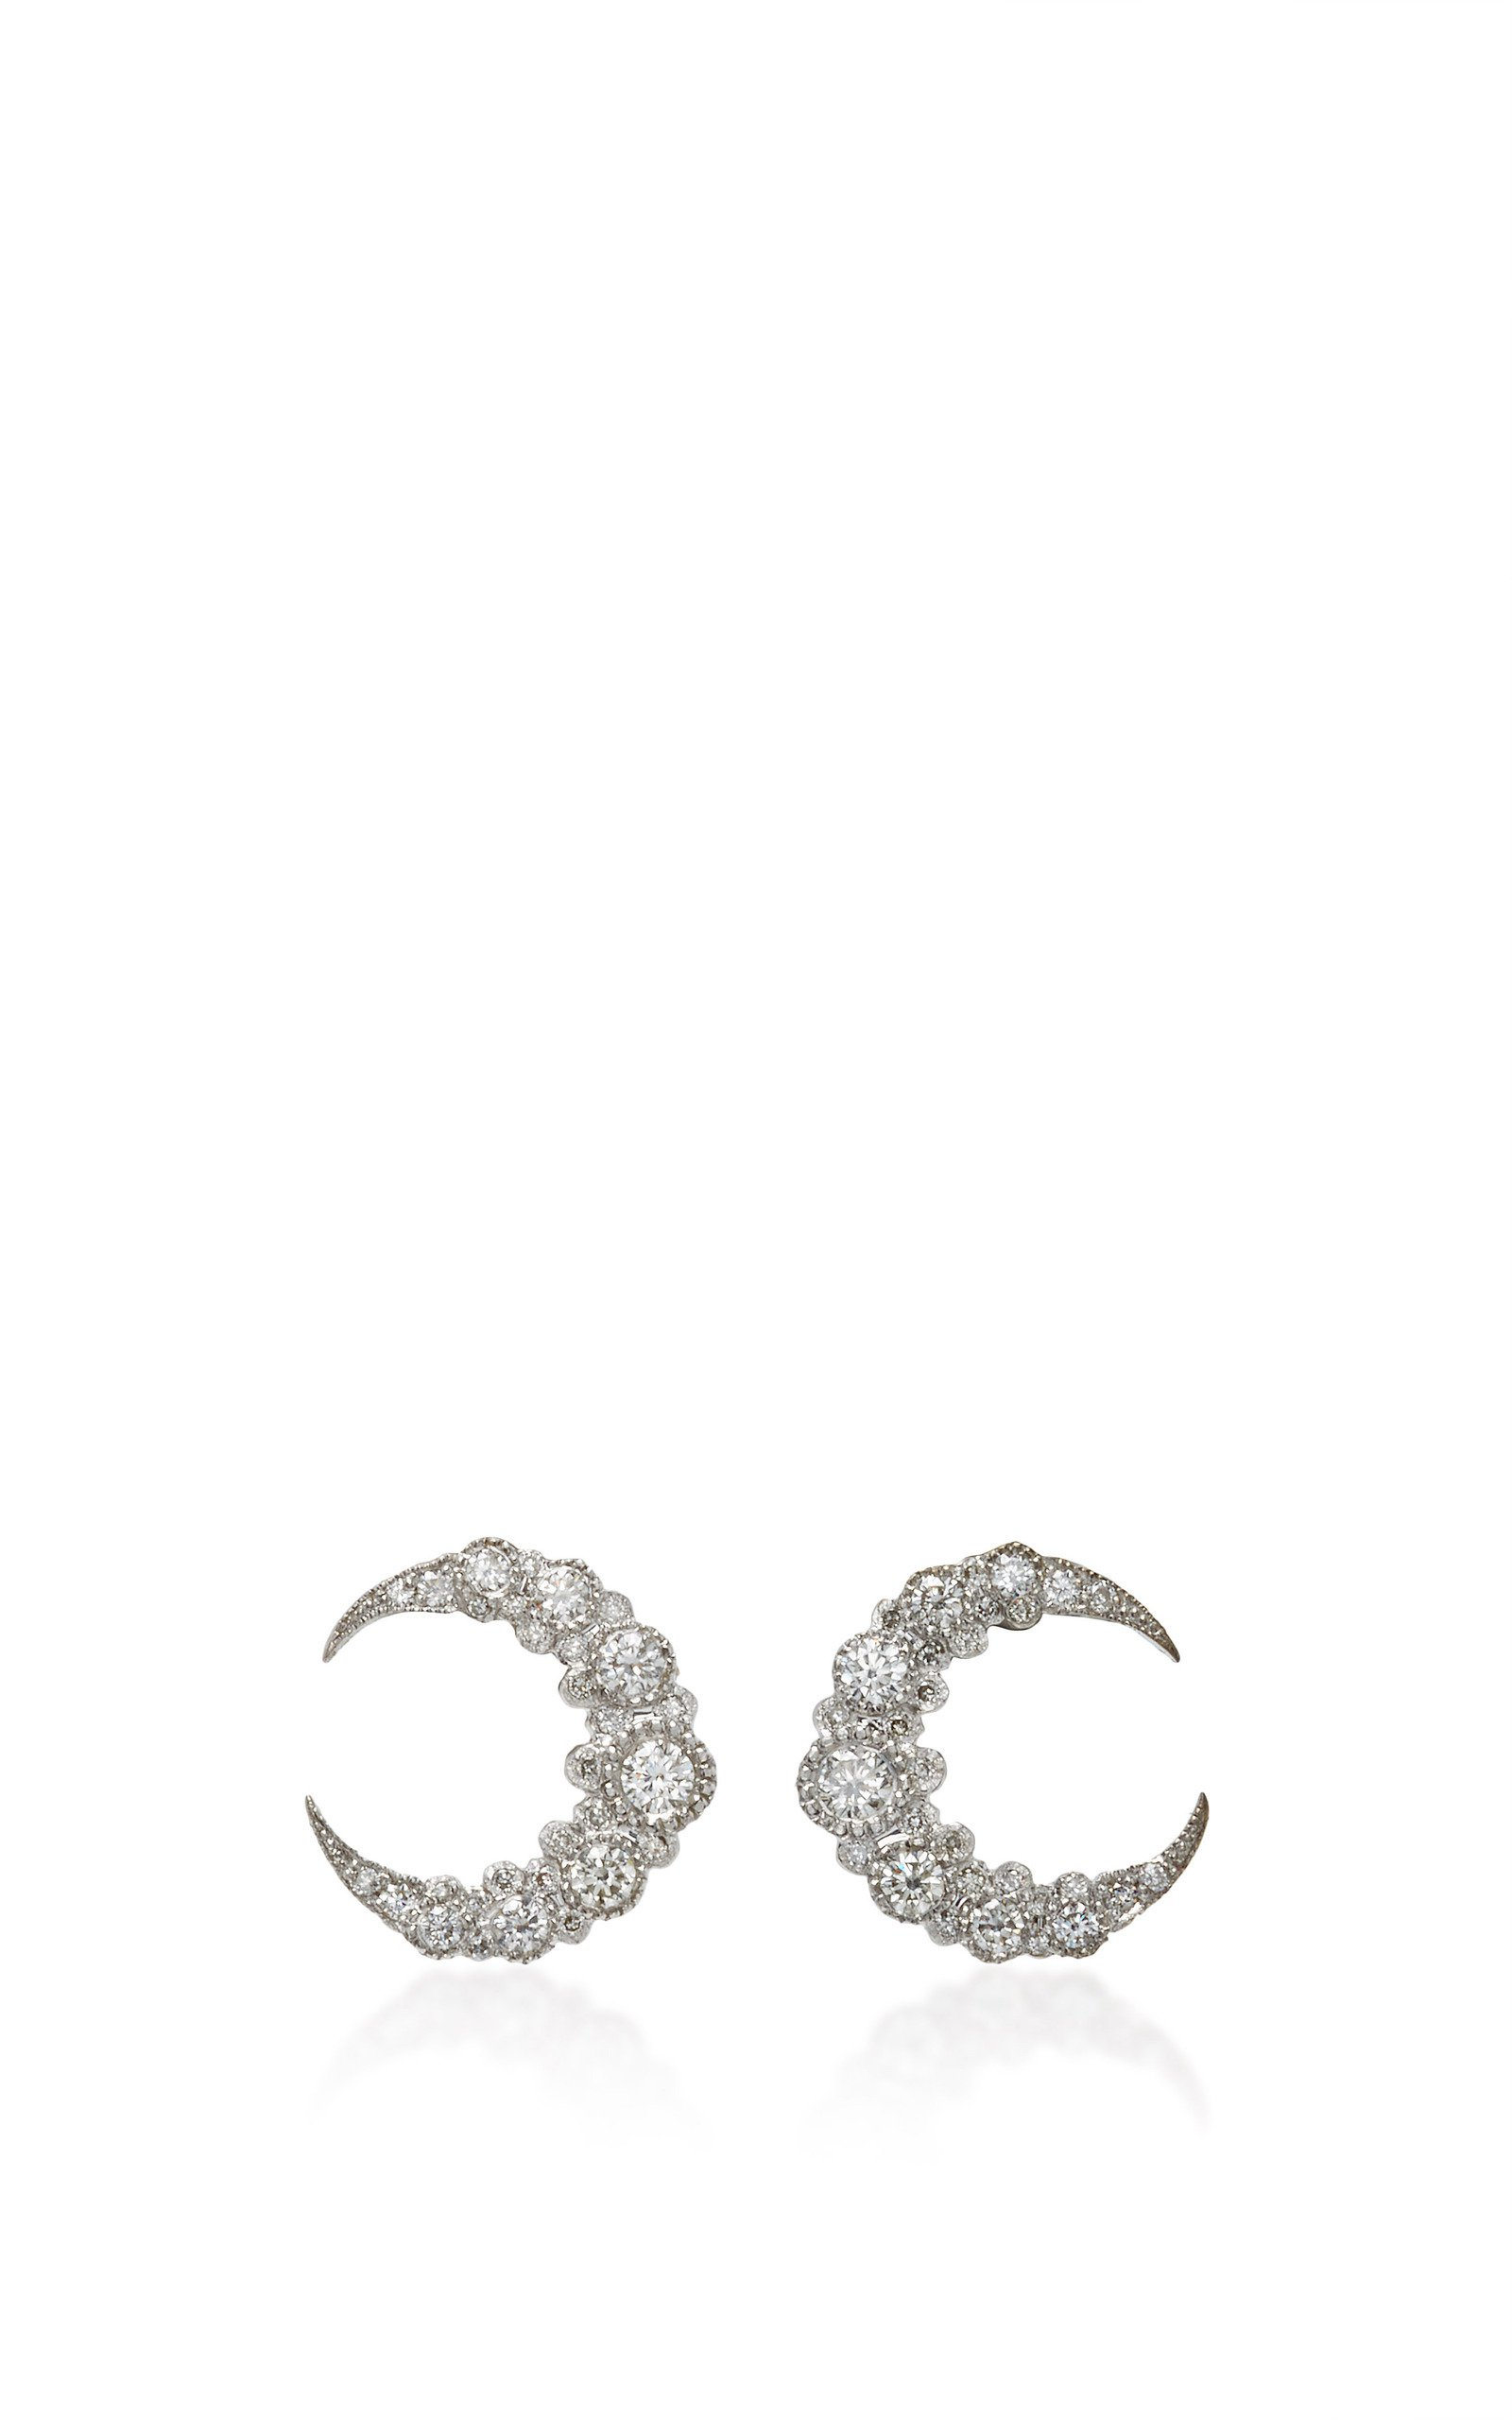 Colette Jewelry Baby Moon 18K White Gold and Diamond Earrings